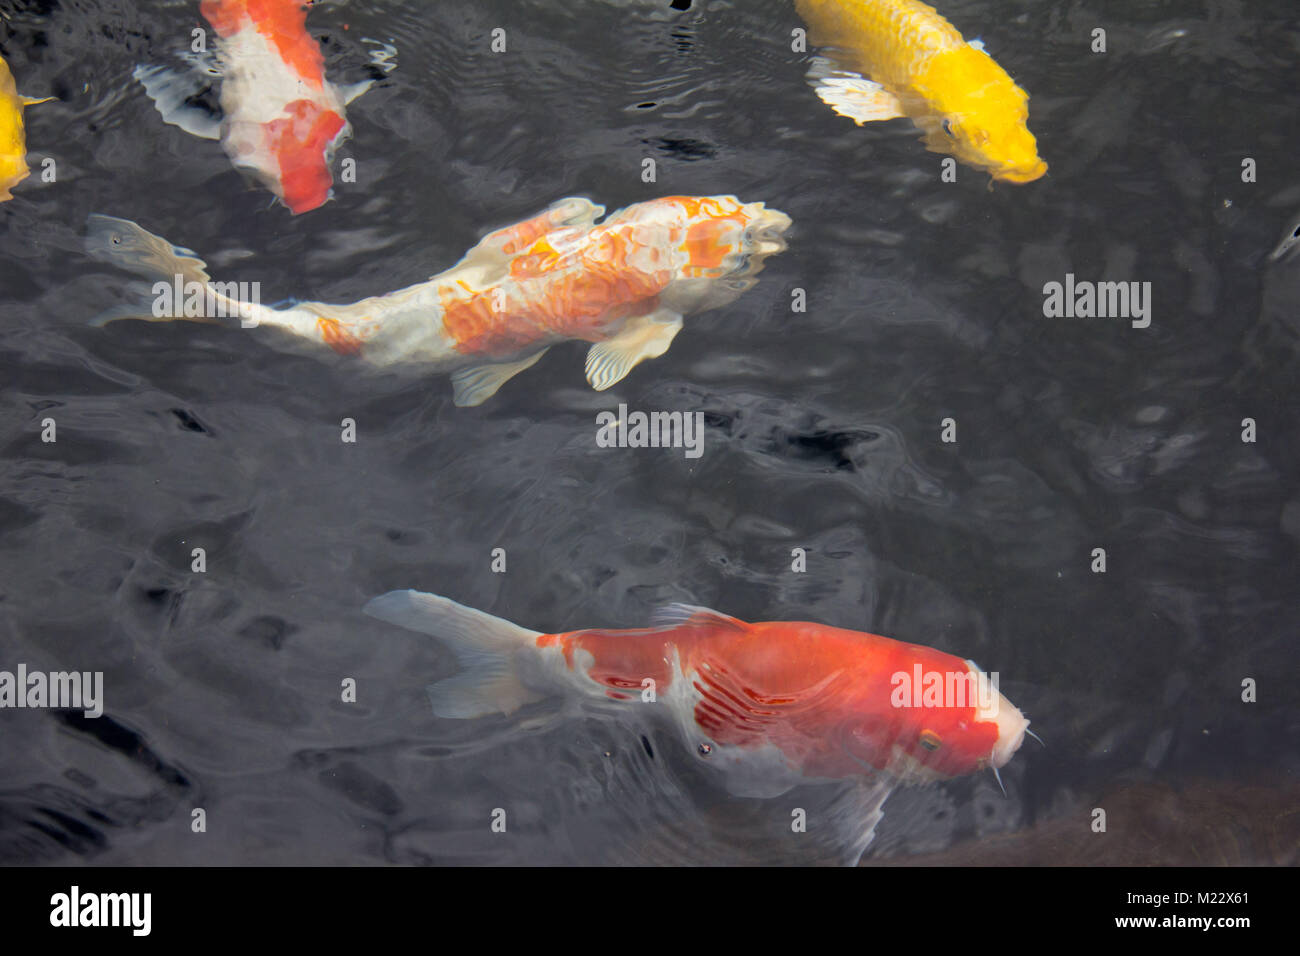 Coldwater fish stock photos coldwater fish stock images for Koi fish farm near me